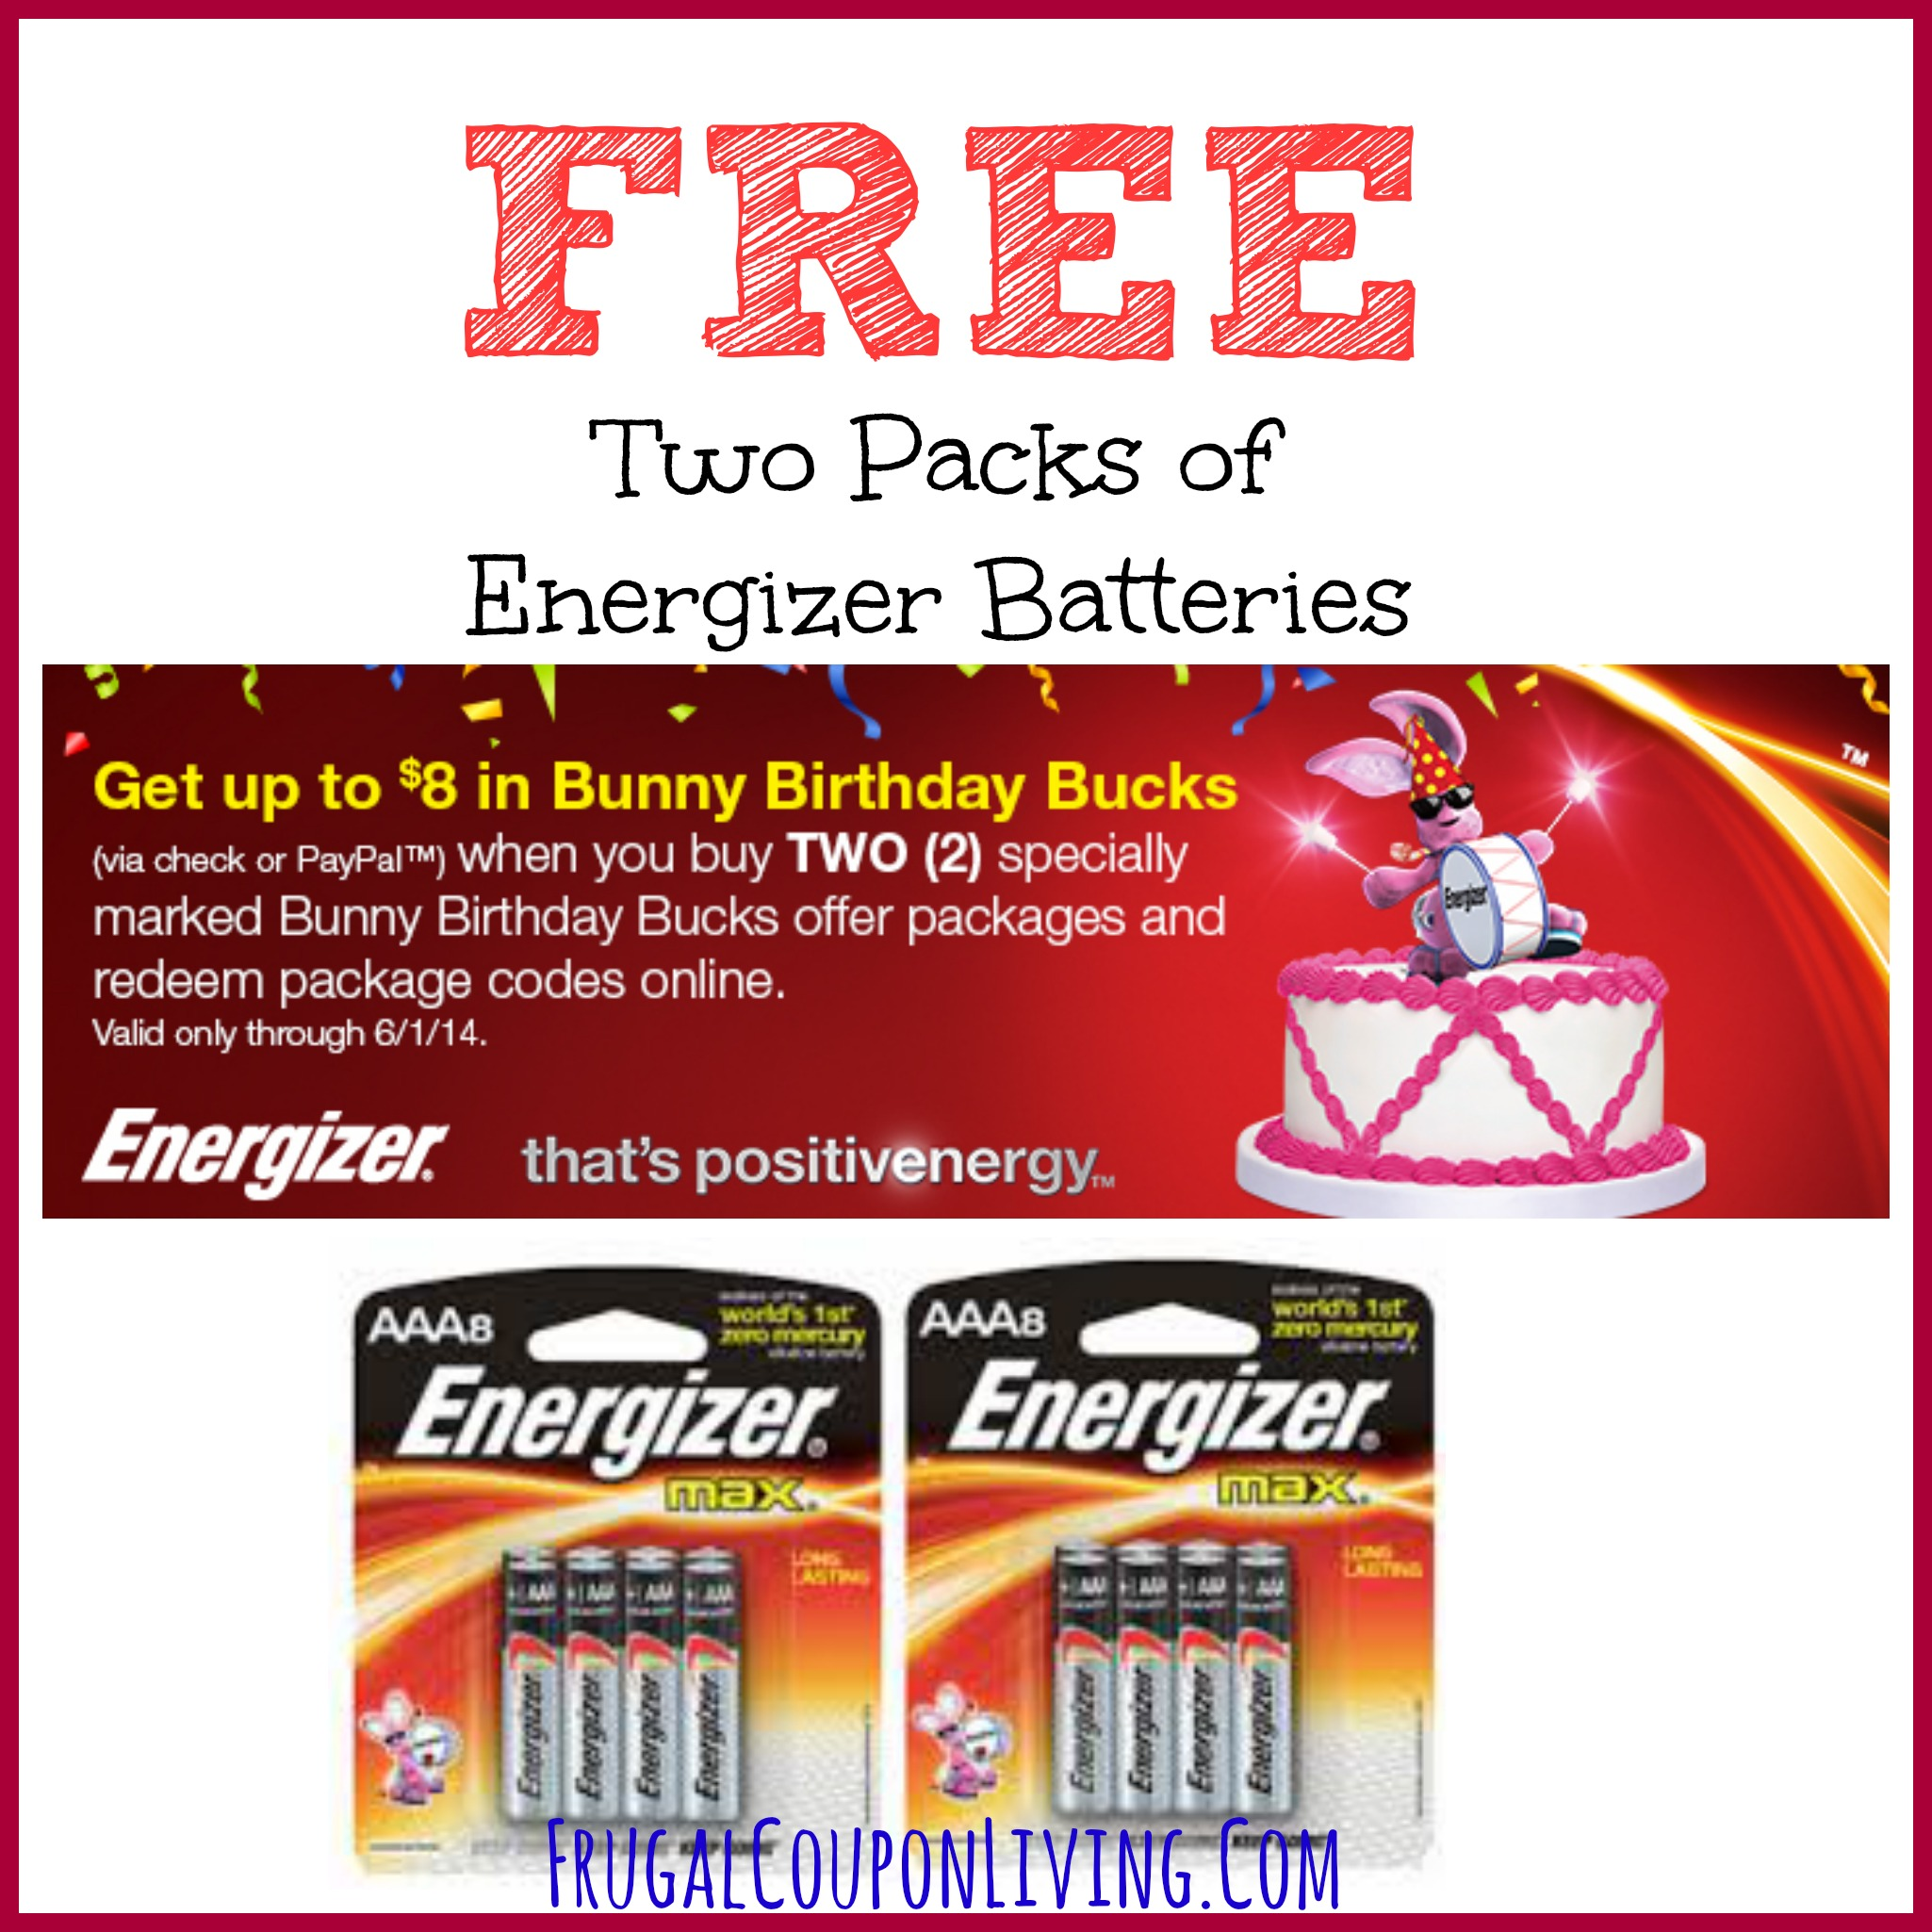 photograph regarding Duracell Hearing Aid Batteries 312 Coupons Printable known as Printable energizer battery discount coupons 2018 - Good sams